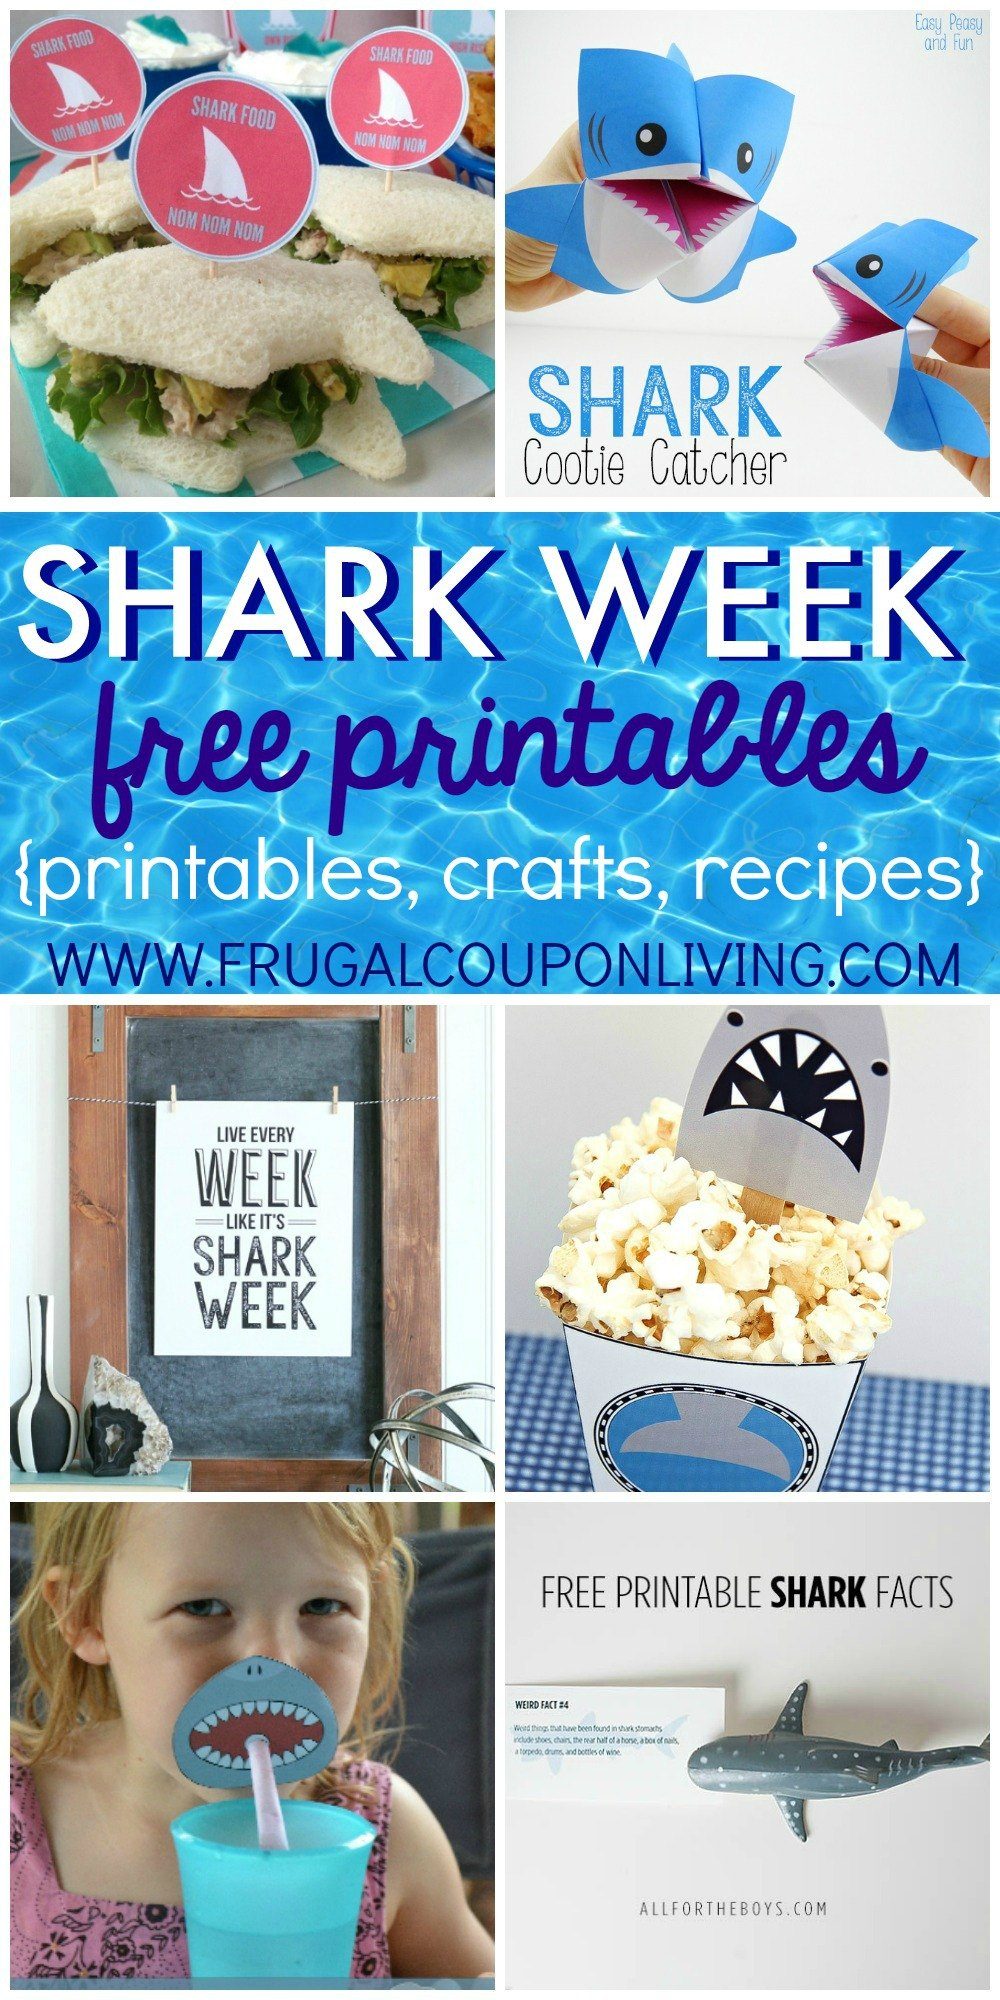 shark-printables-collage-Frugal-coupon-living